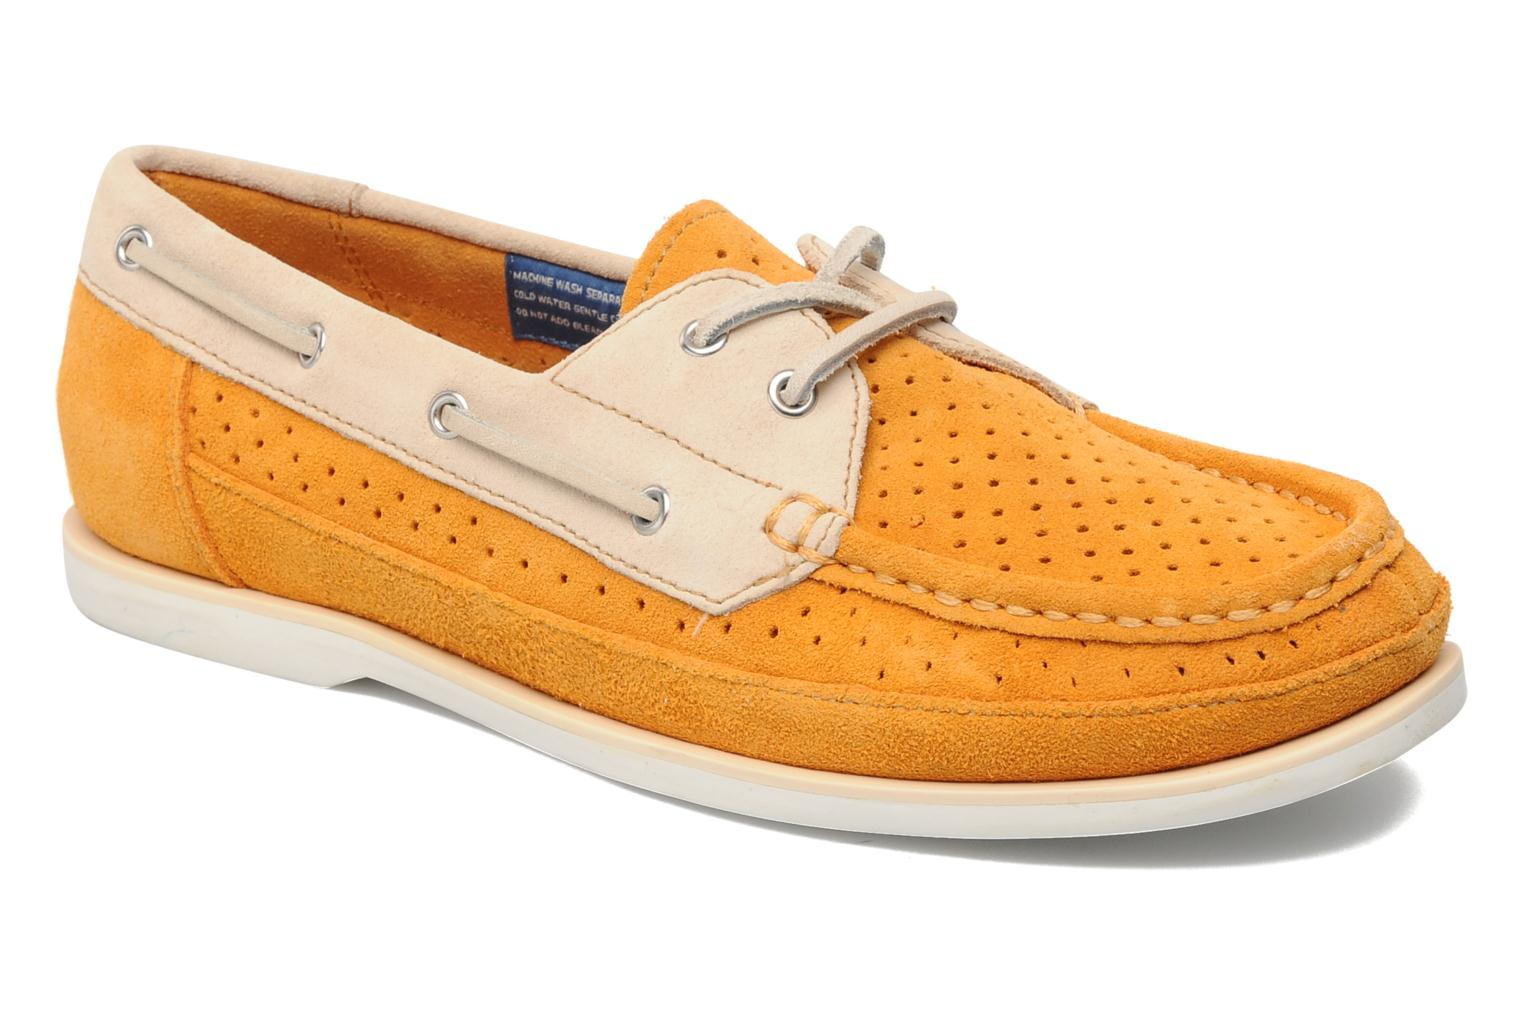 Veterschoenen Bonnie Perf Boat Shoe by Rockport